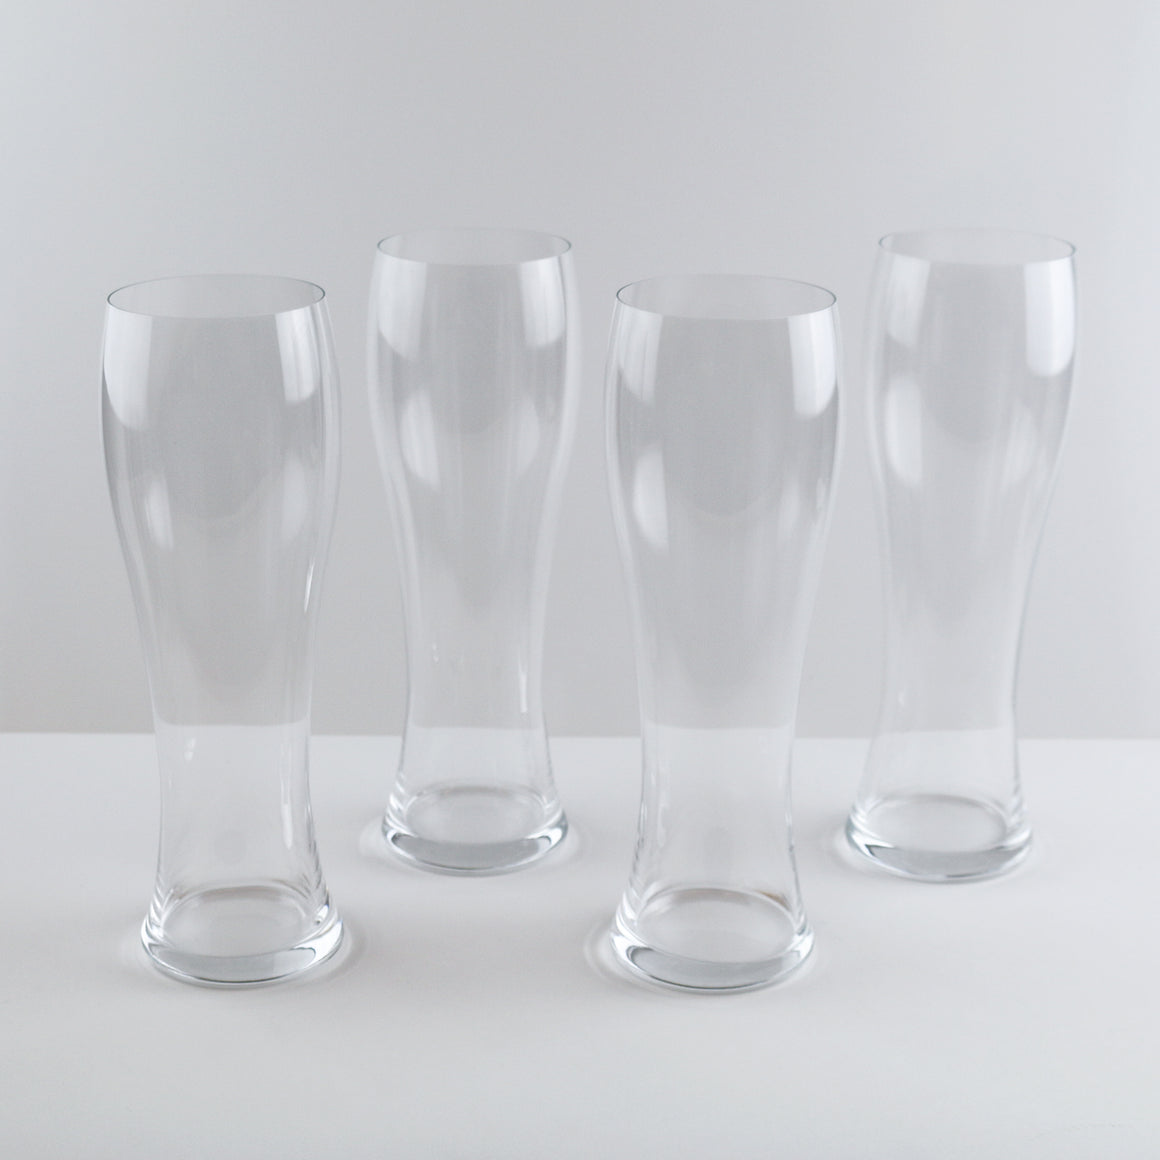 Spiegelau Hefeweizen Glass (Set of 4)